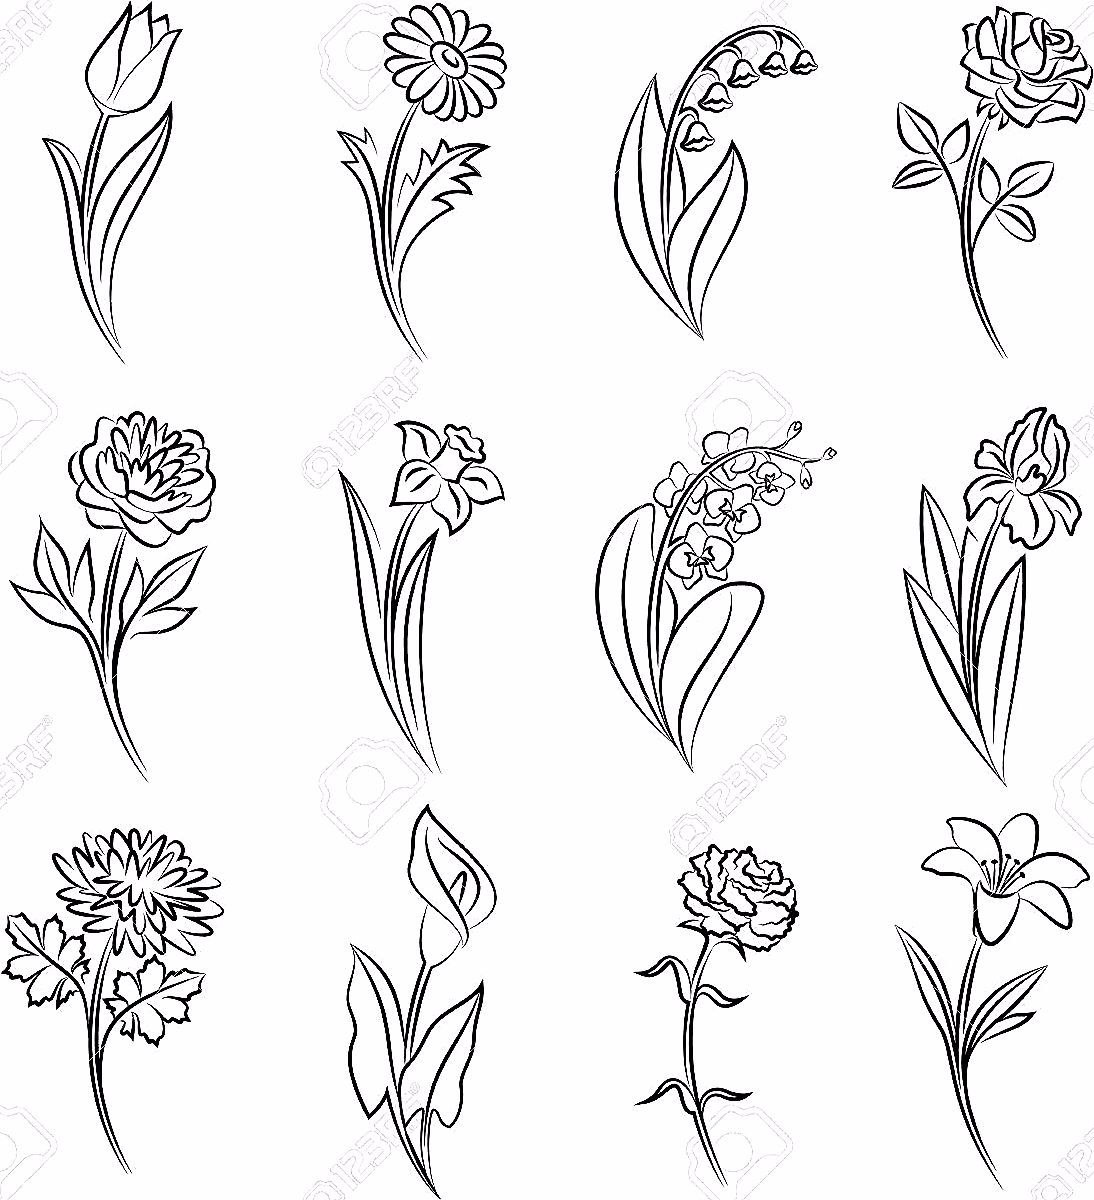 Outline Of Flowers Tulip Chamomile Lily Of The Valley Rose Peony Narcissus Orchid And Iris In 2020 Narcissus Flower Tattoos Flower Sketches Chrysanthemum Tattoo